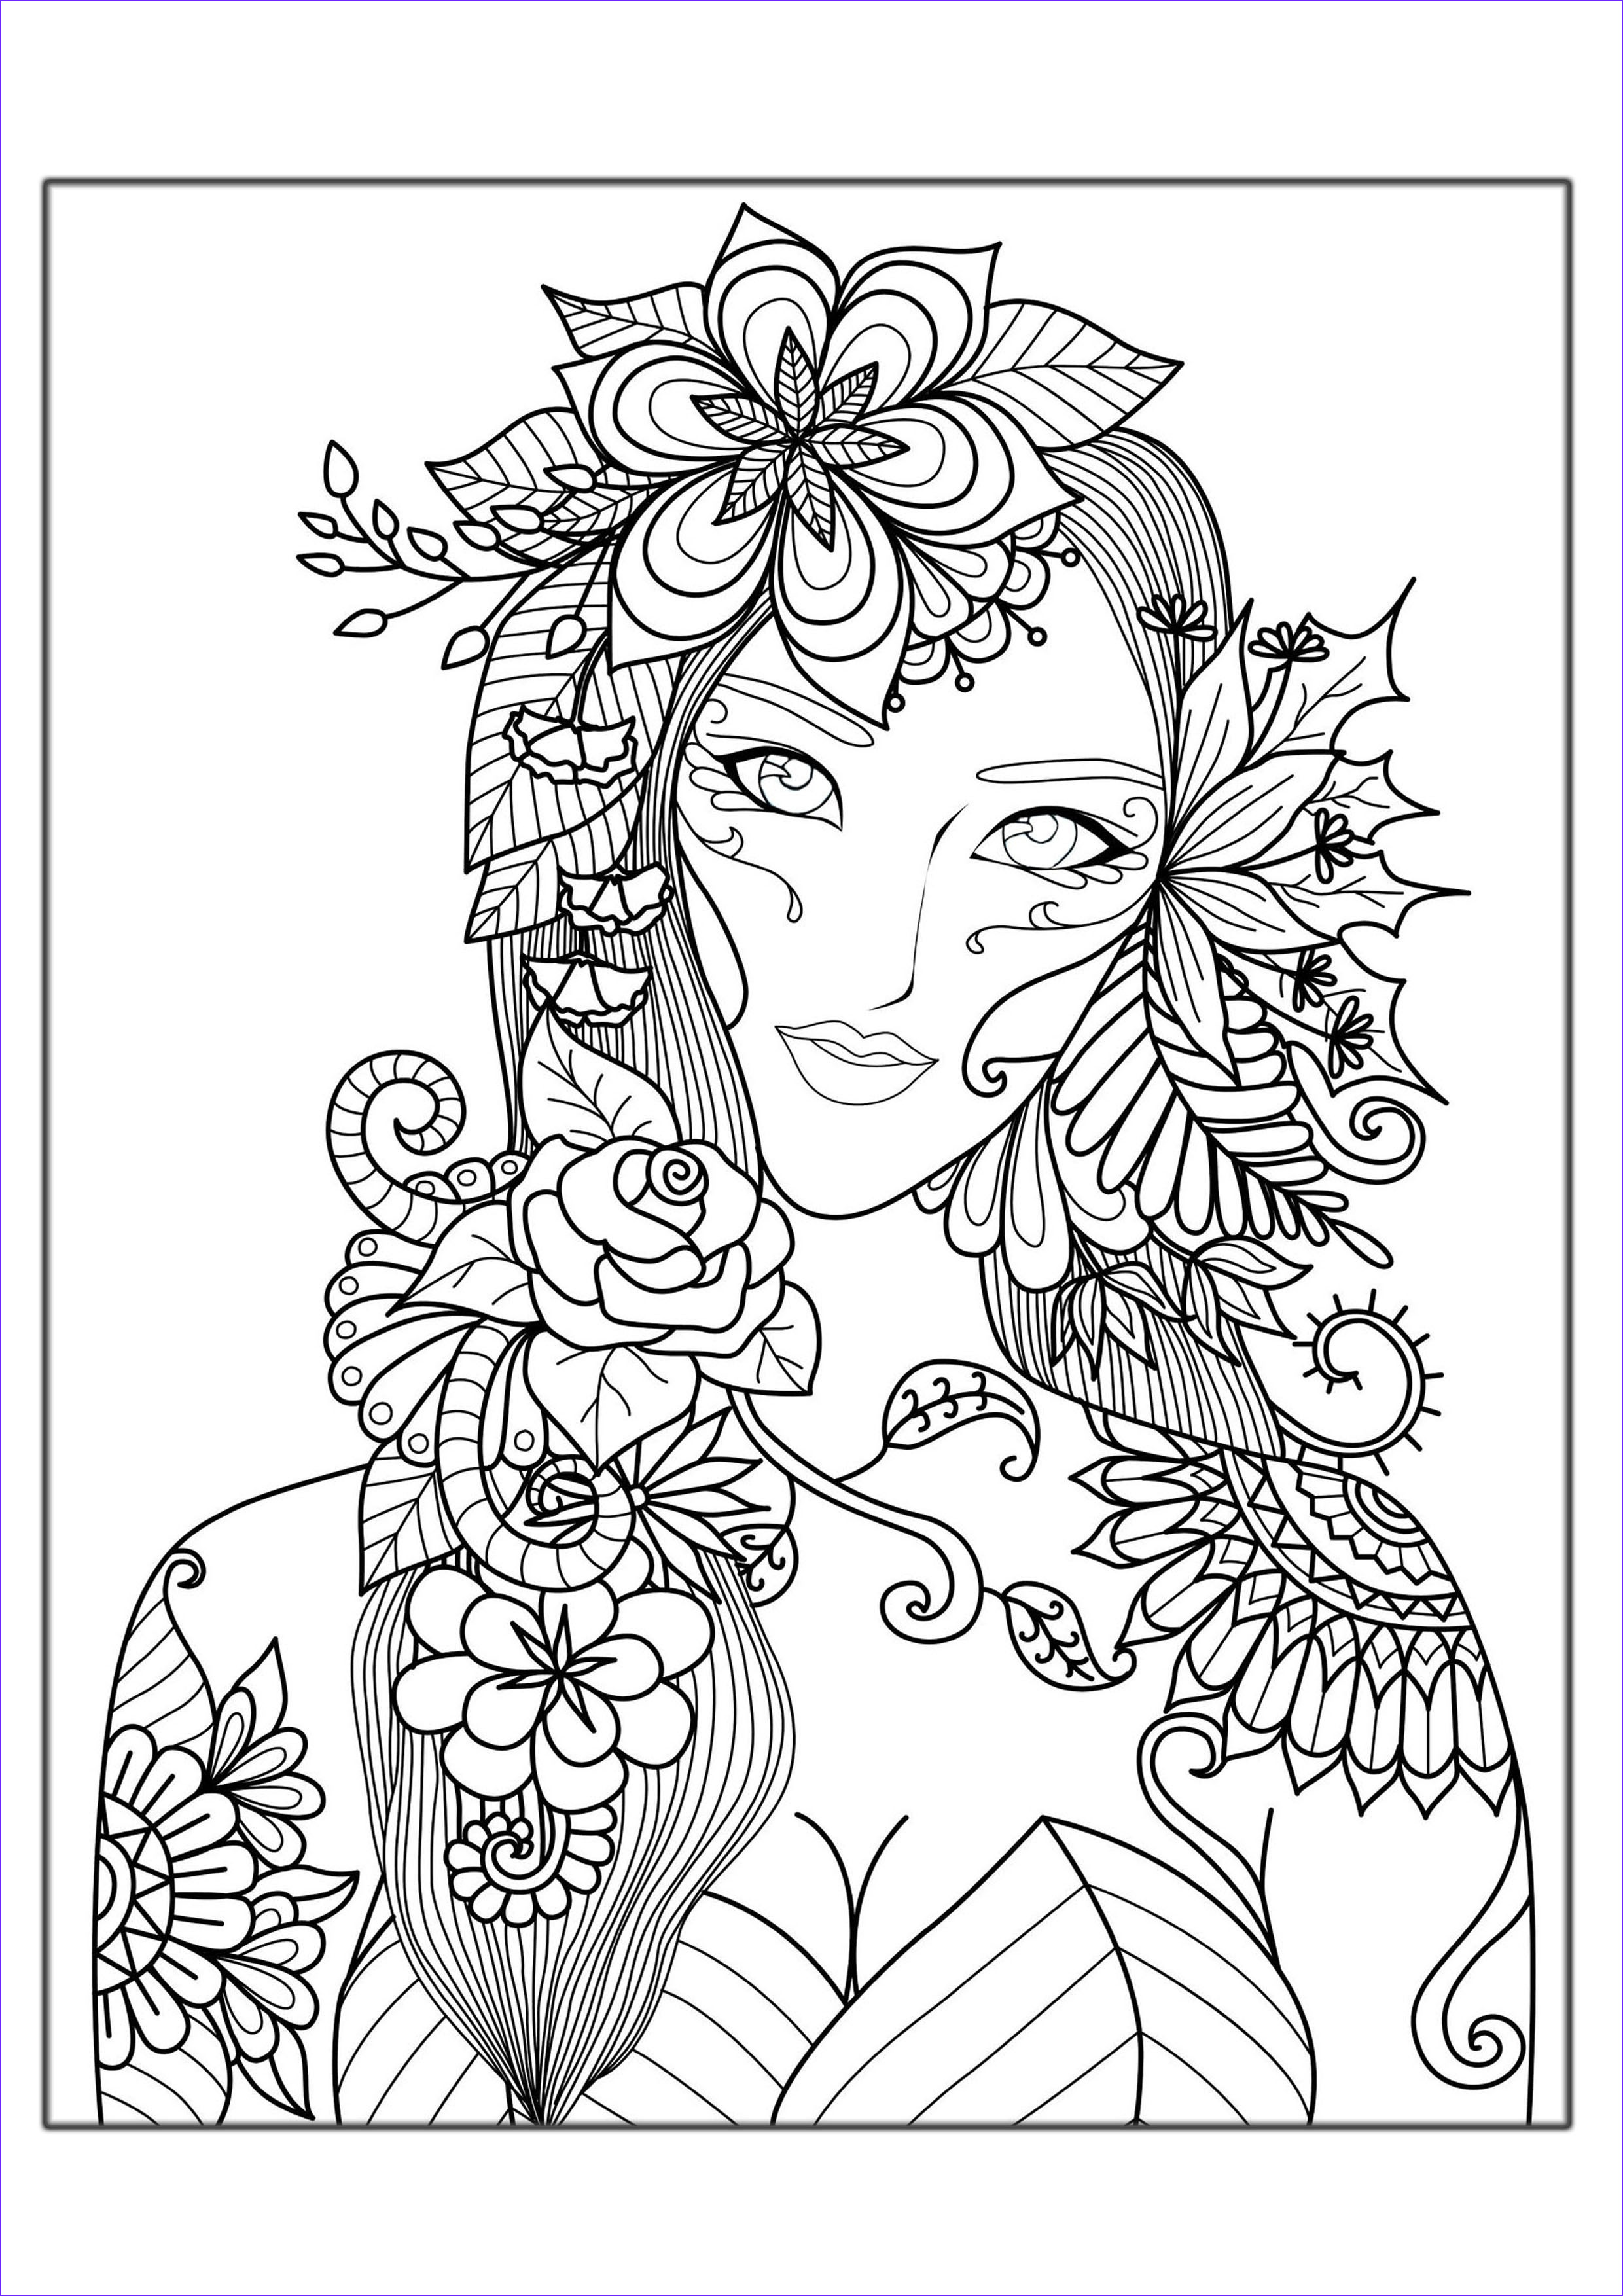 Coloring Pags Elegant Image Fall Coloring Pages for Adults Best Coloring Pages for Kids